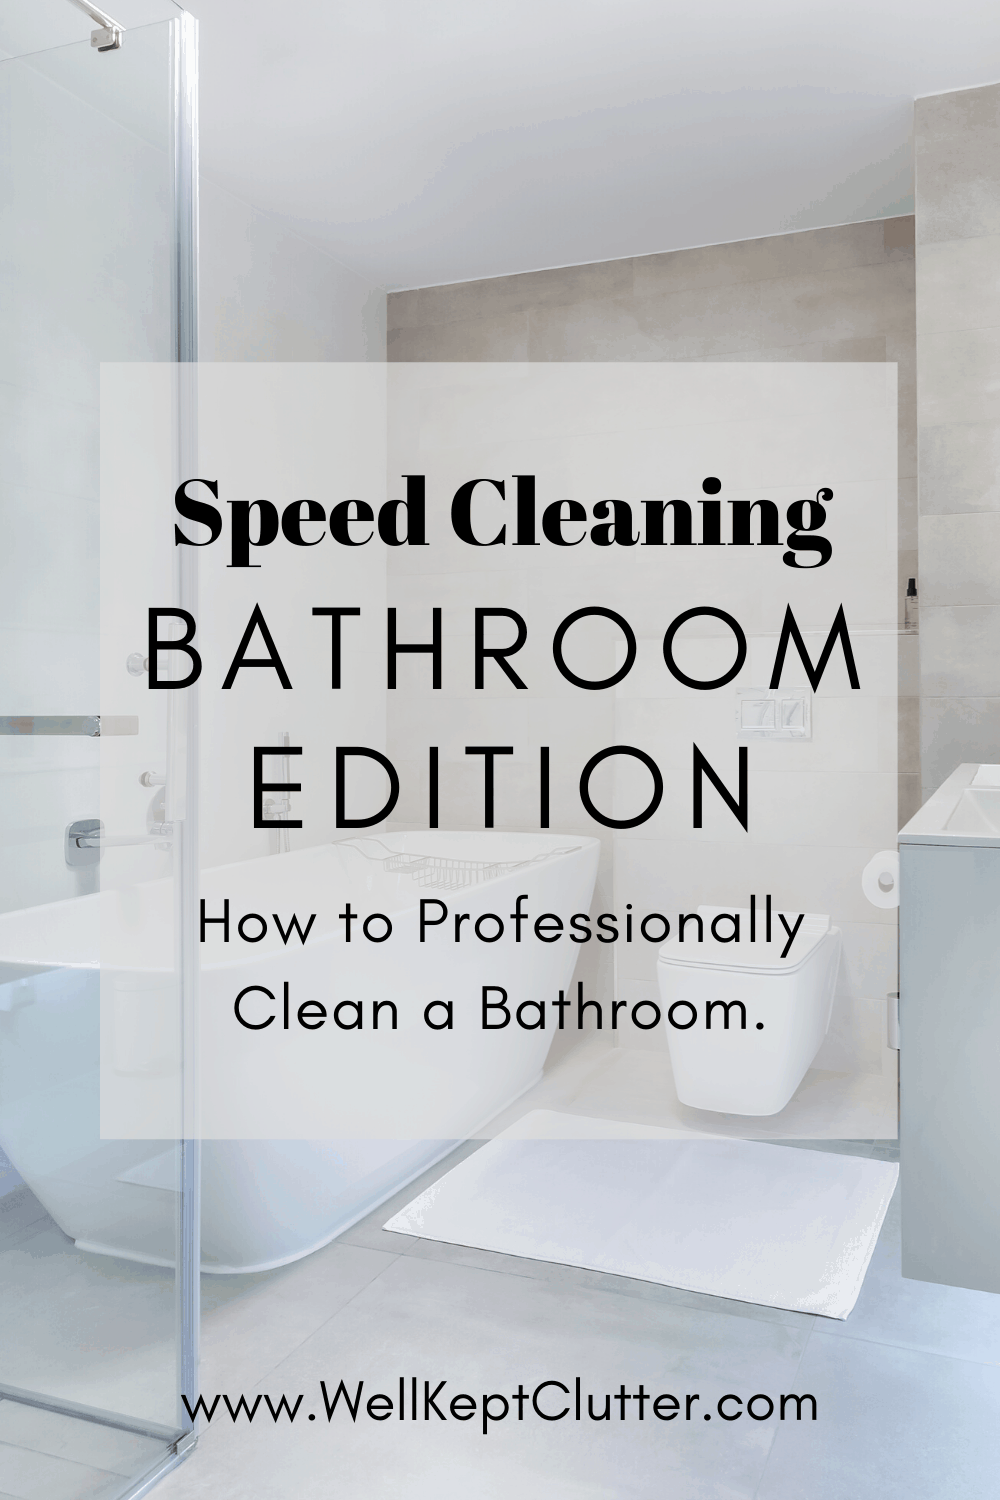 How to Professionally Clean a Bathroom.